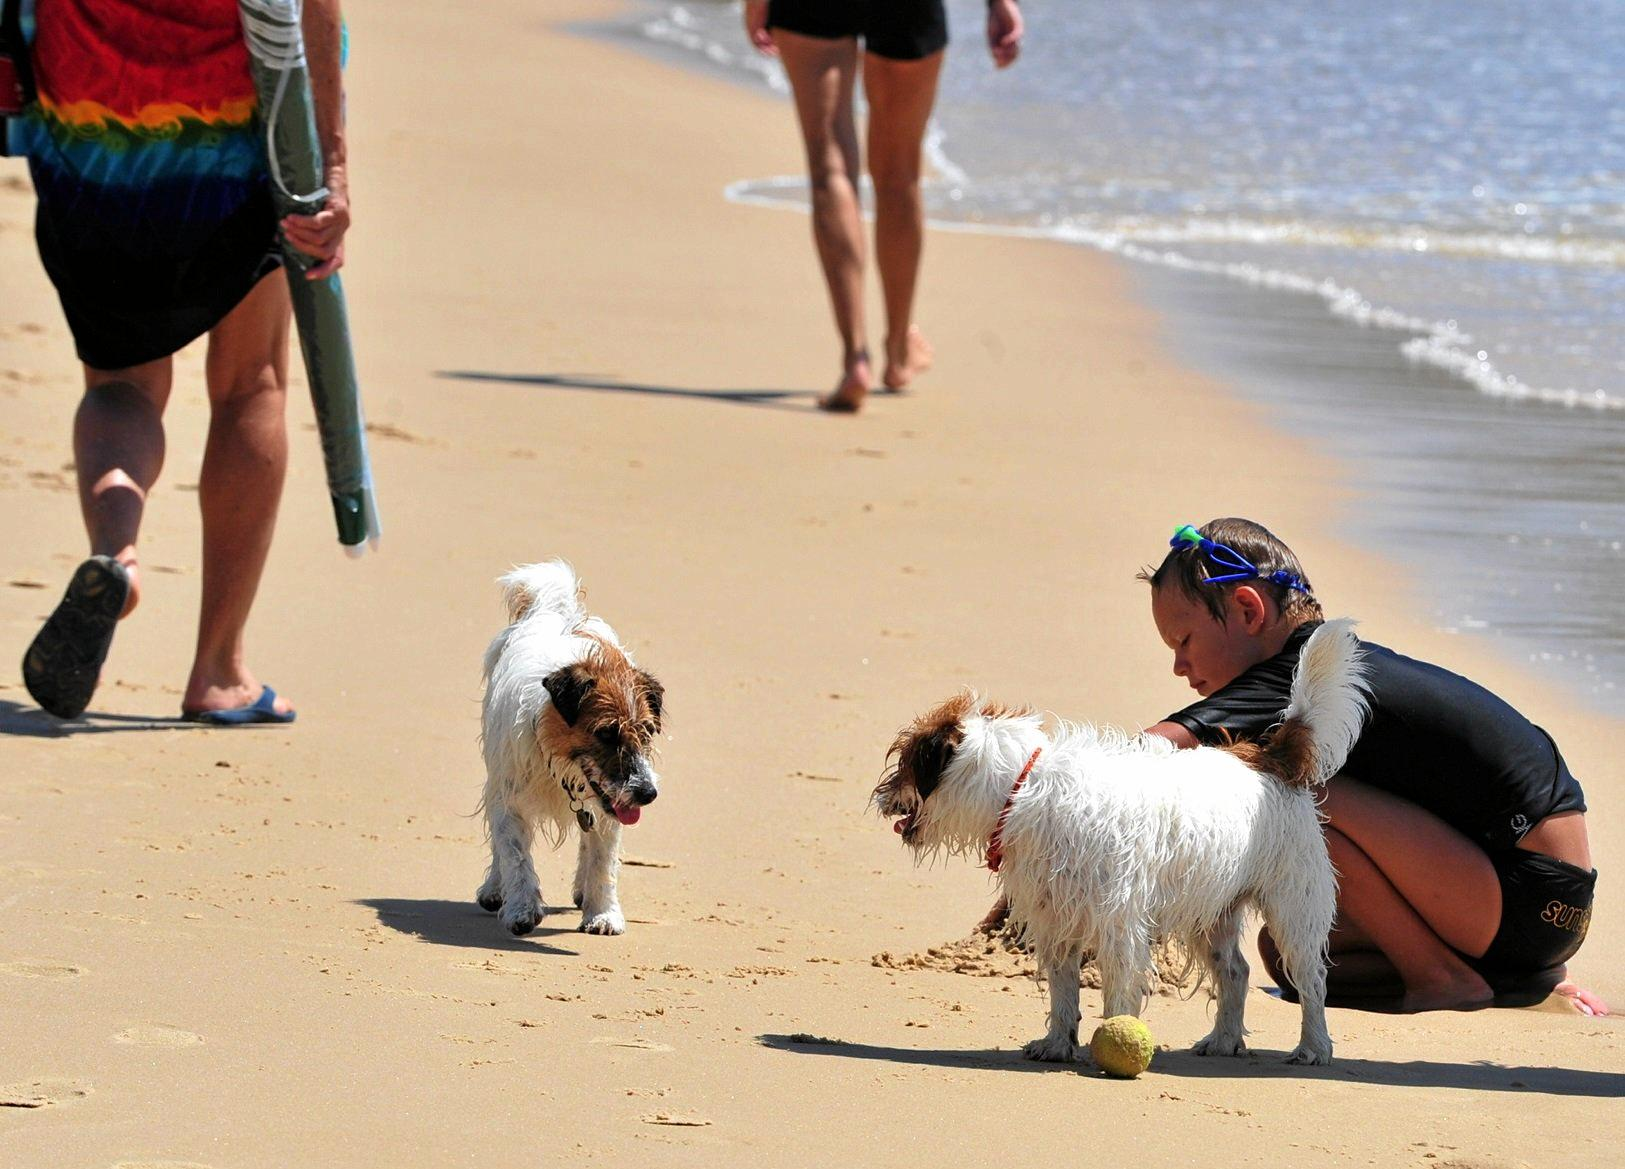 NO THREAT: These two friendly pooches were happily playing off leash at Sunshine Beach, but Council is putting dog owners on notice.